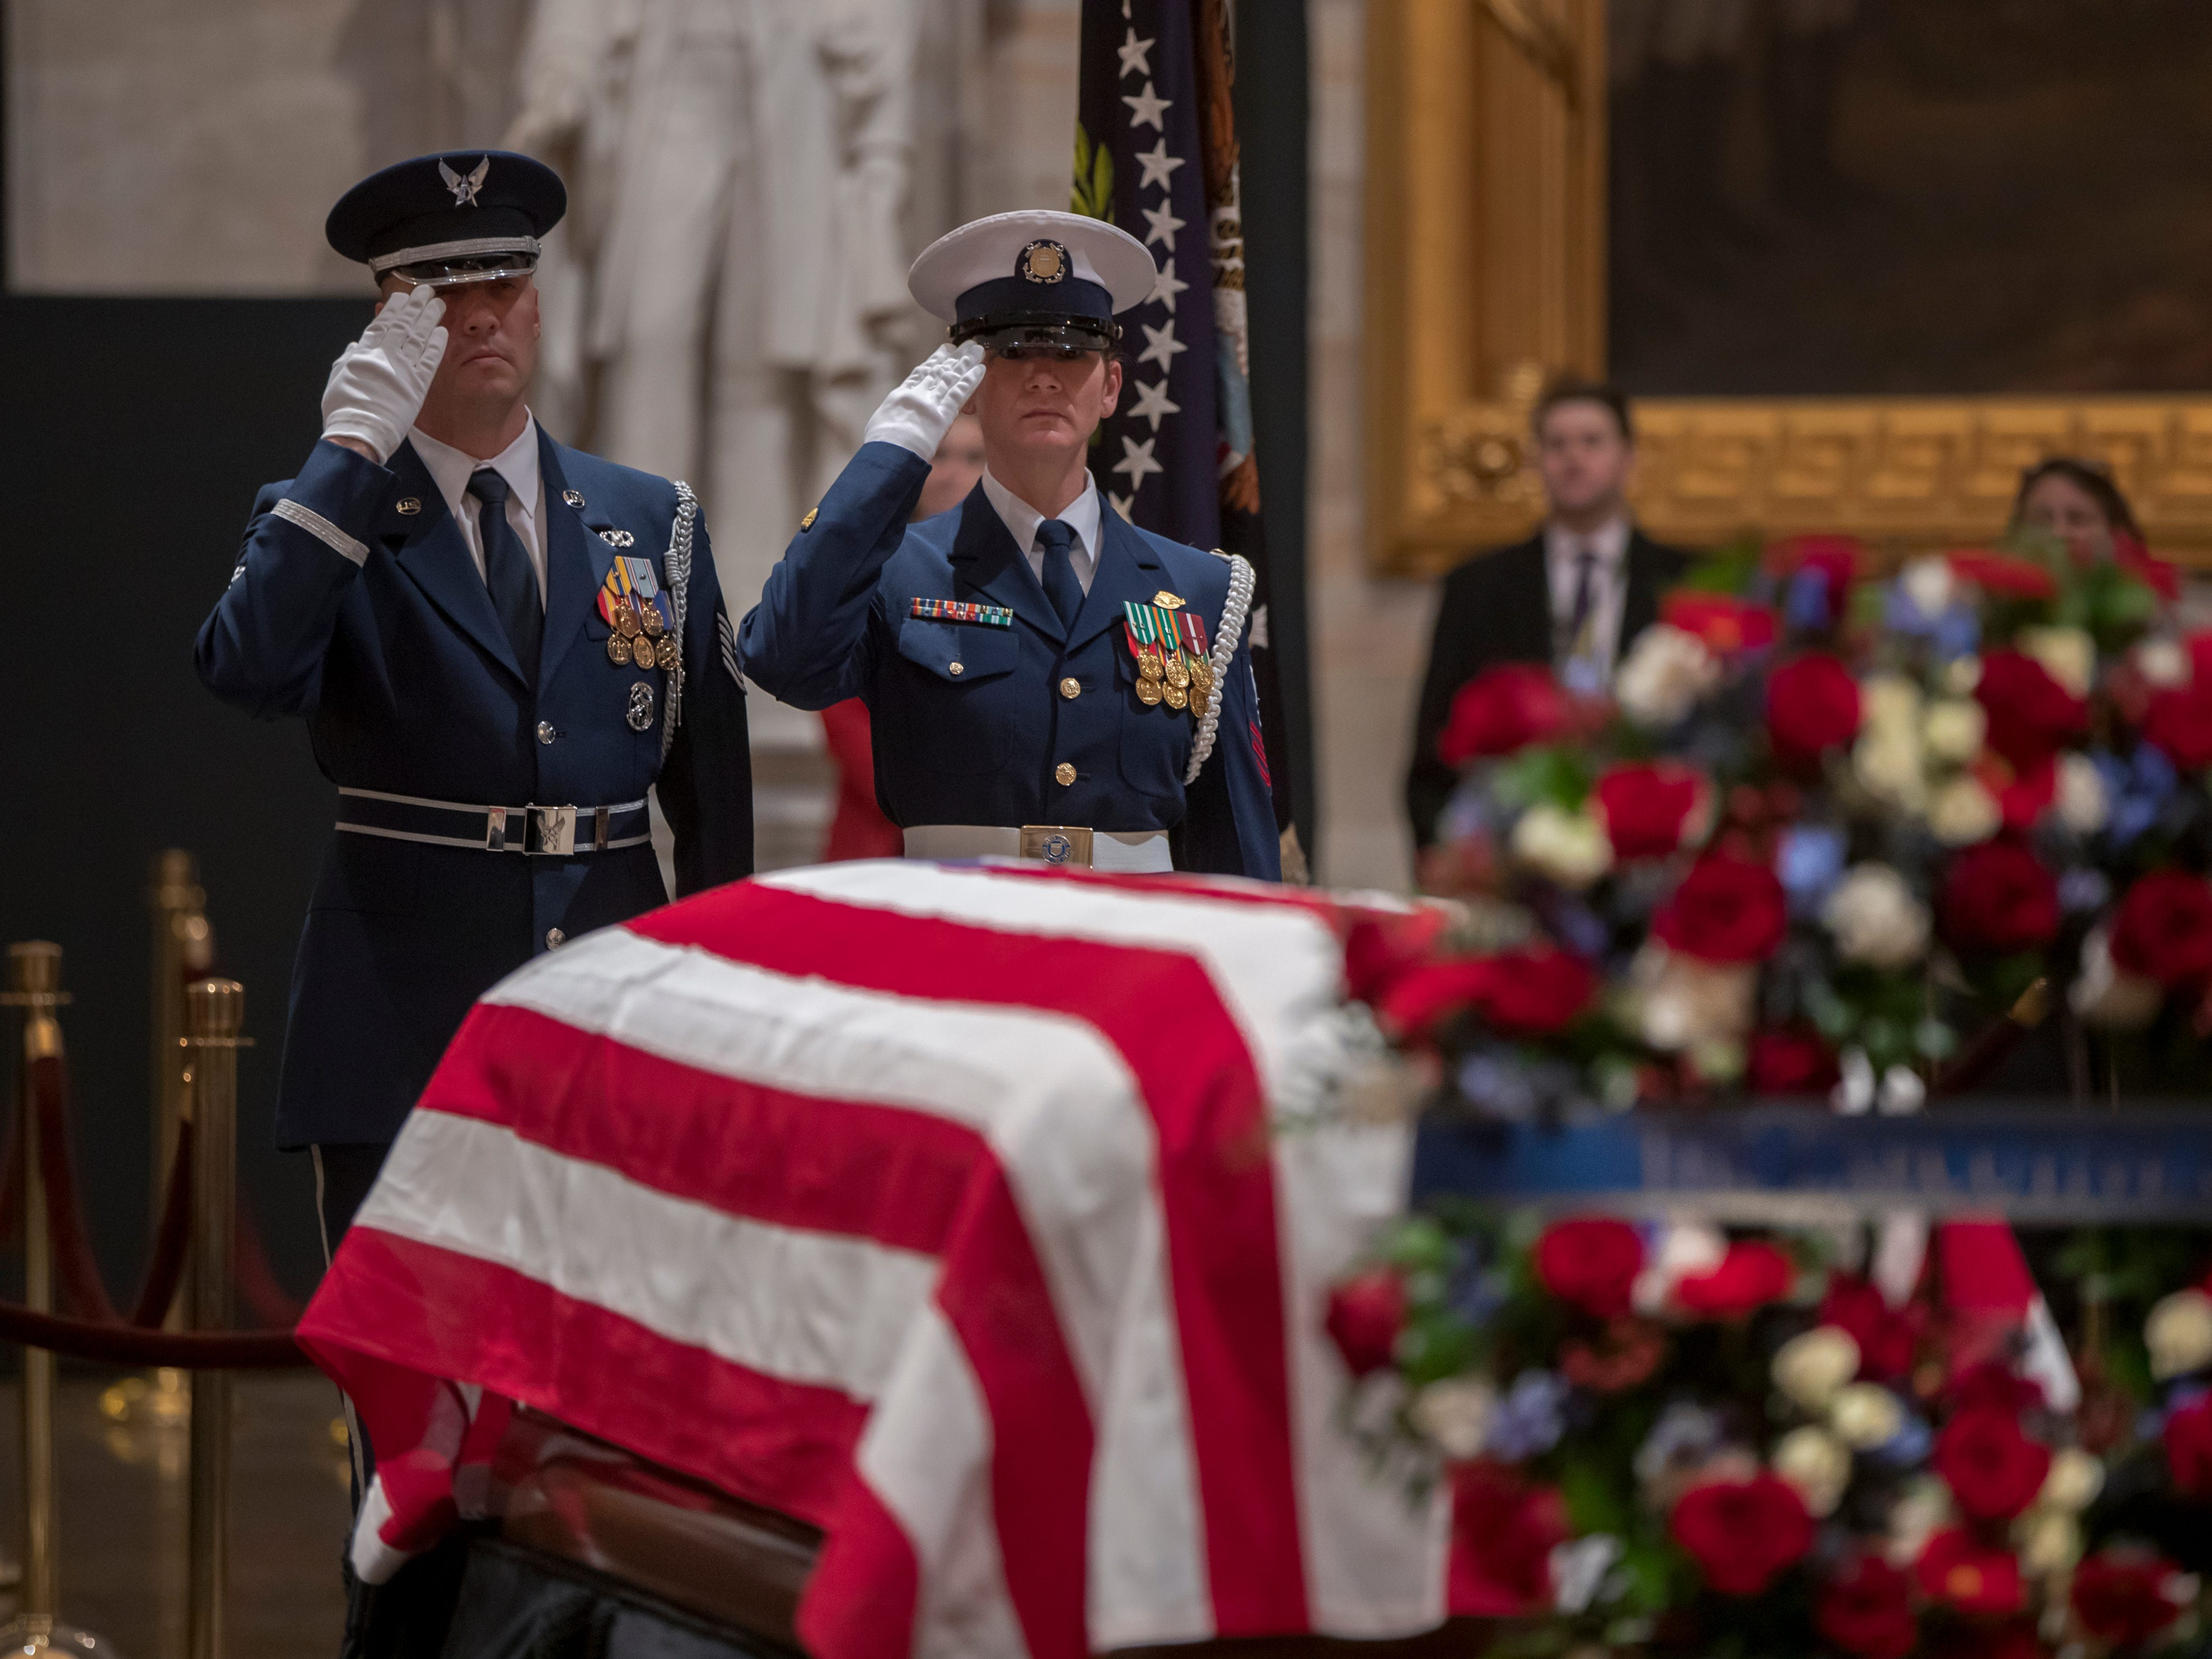 Wednesday morning, a final salute is rendered by the honor guard standing watch over the flag-draped casket of the late president as the public viewing comes to an end at the U.S. Capitol Rotunda.